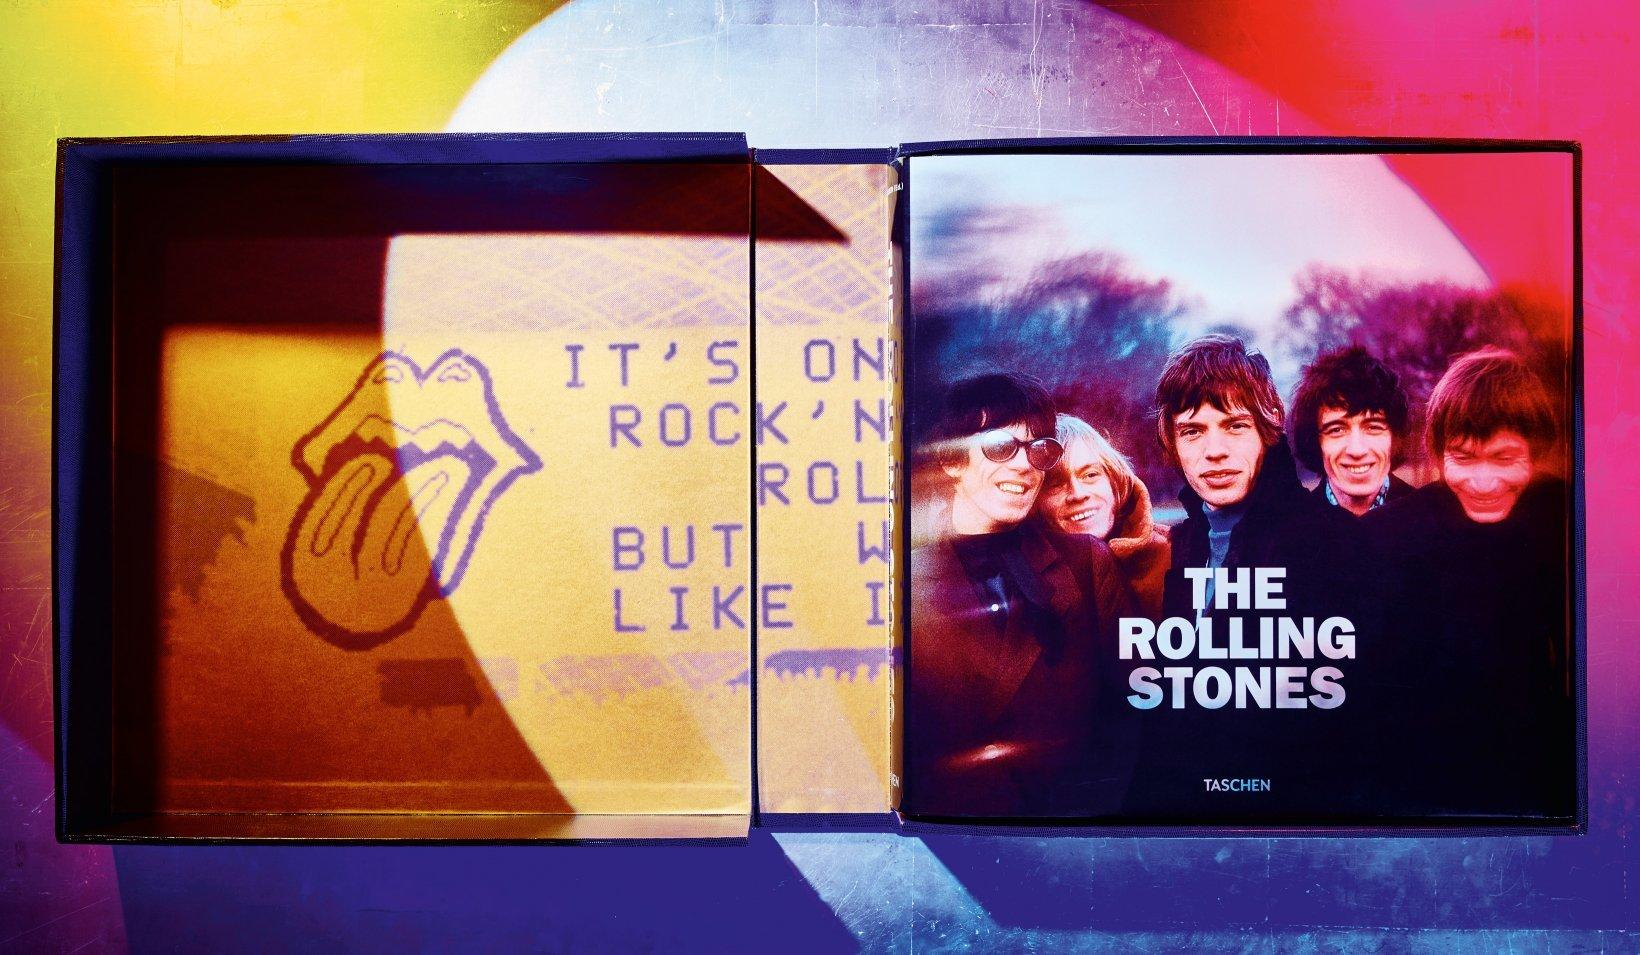 The Rolling Stones Limited Edition